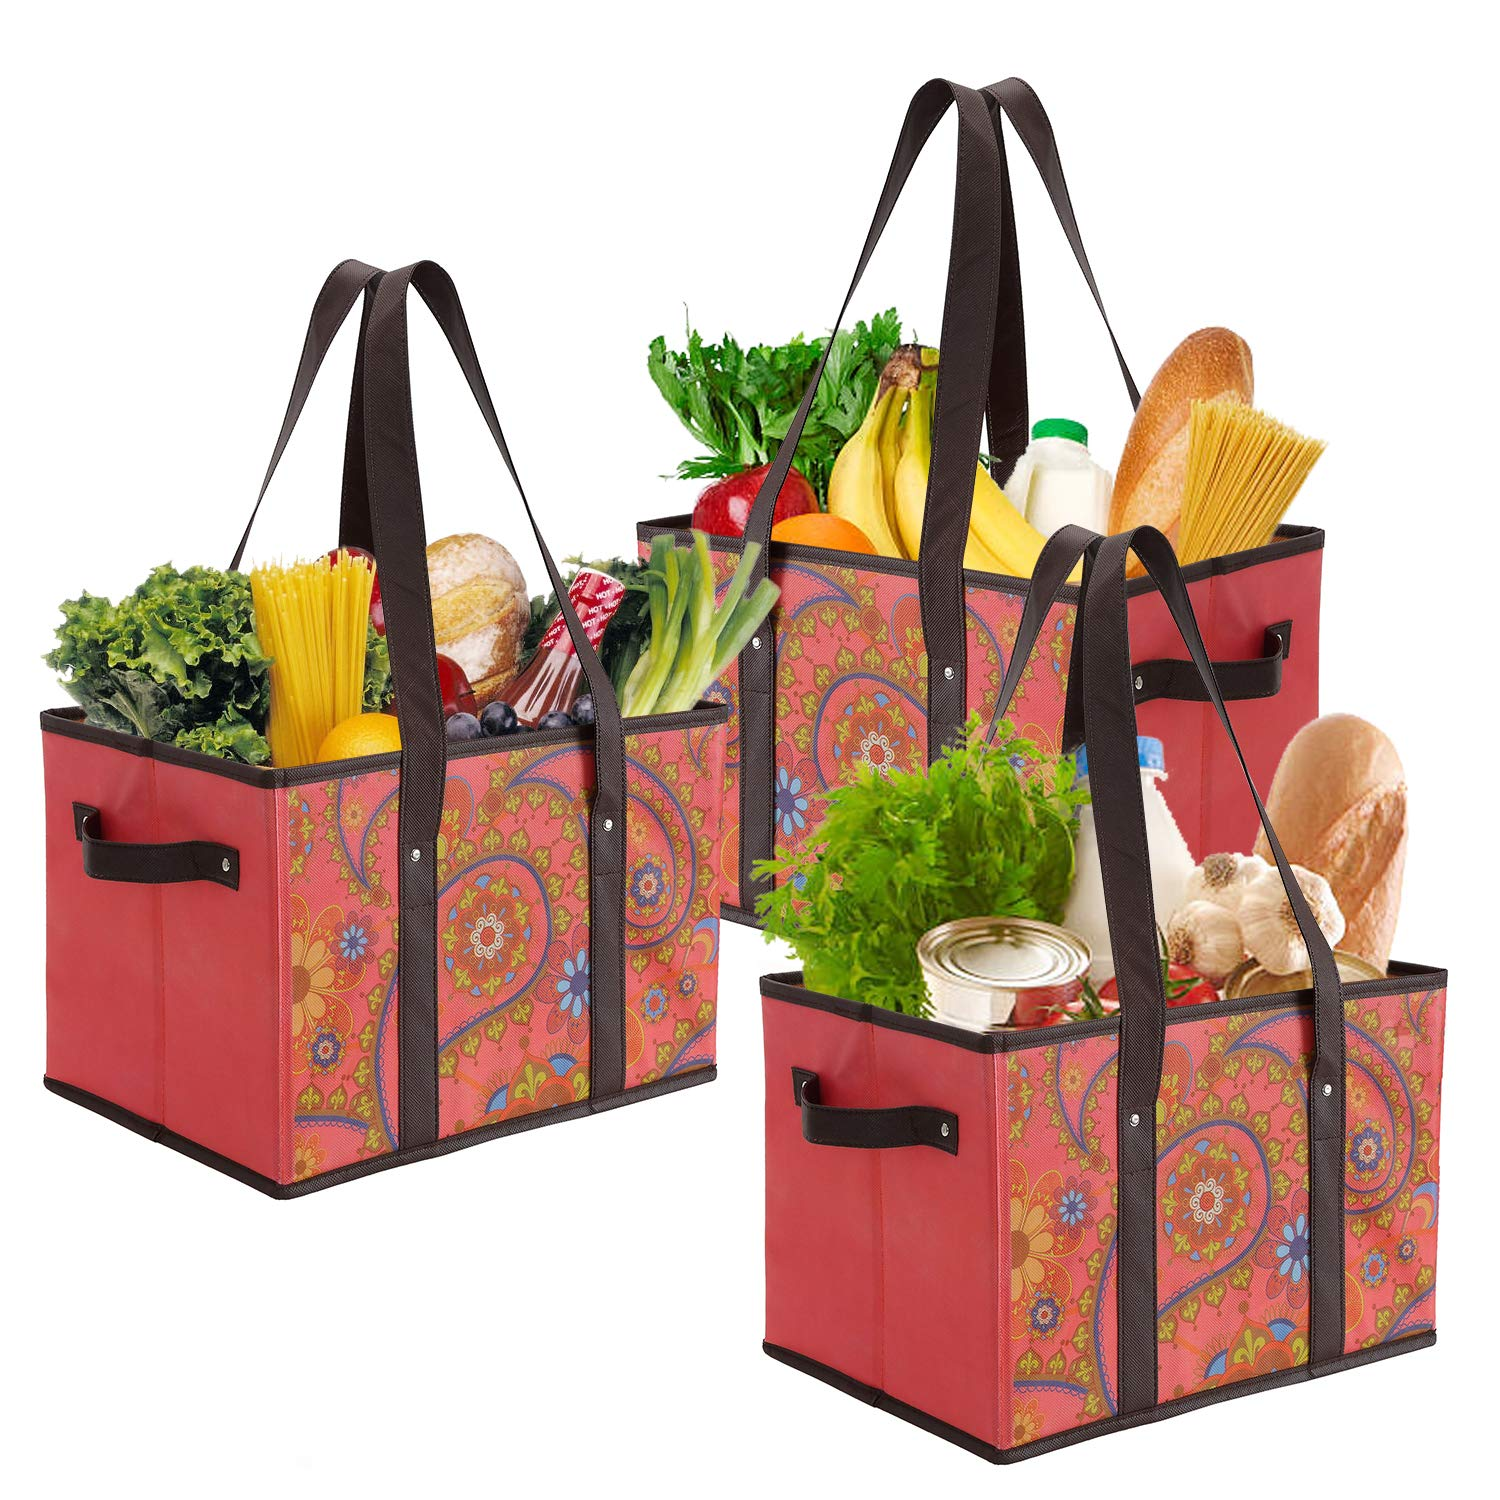 Foraineam Reusable Grocery Bags Durable Heavy Duty Grocery Totes Bag Collapsible Grocery Shopping Box Bags with Reinforced Bottom, Pack of 3 by Foraineam